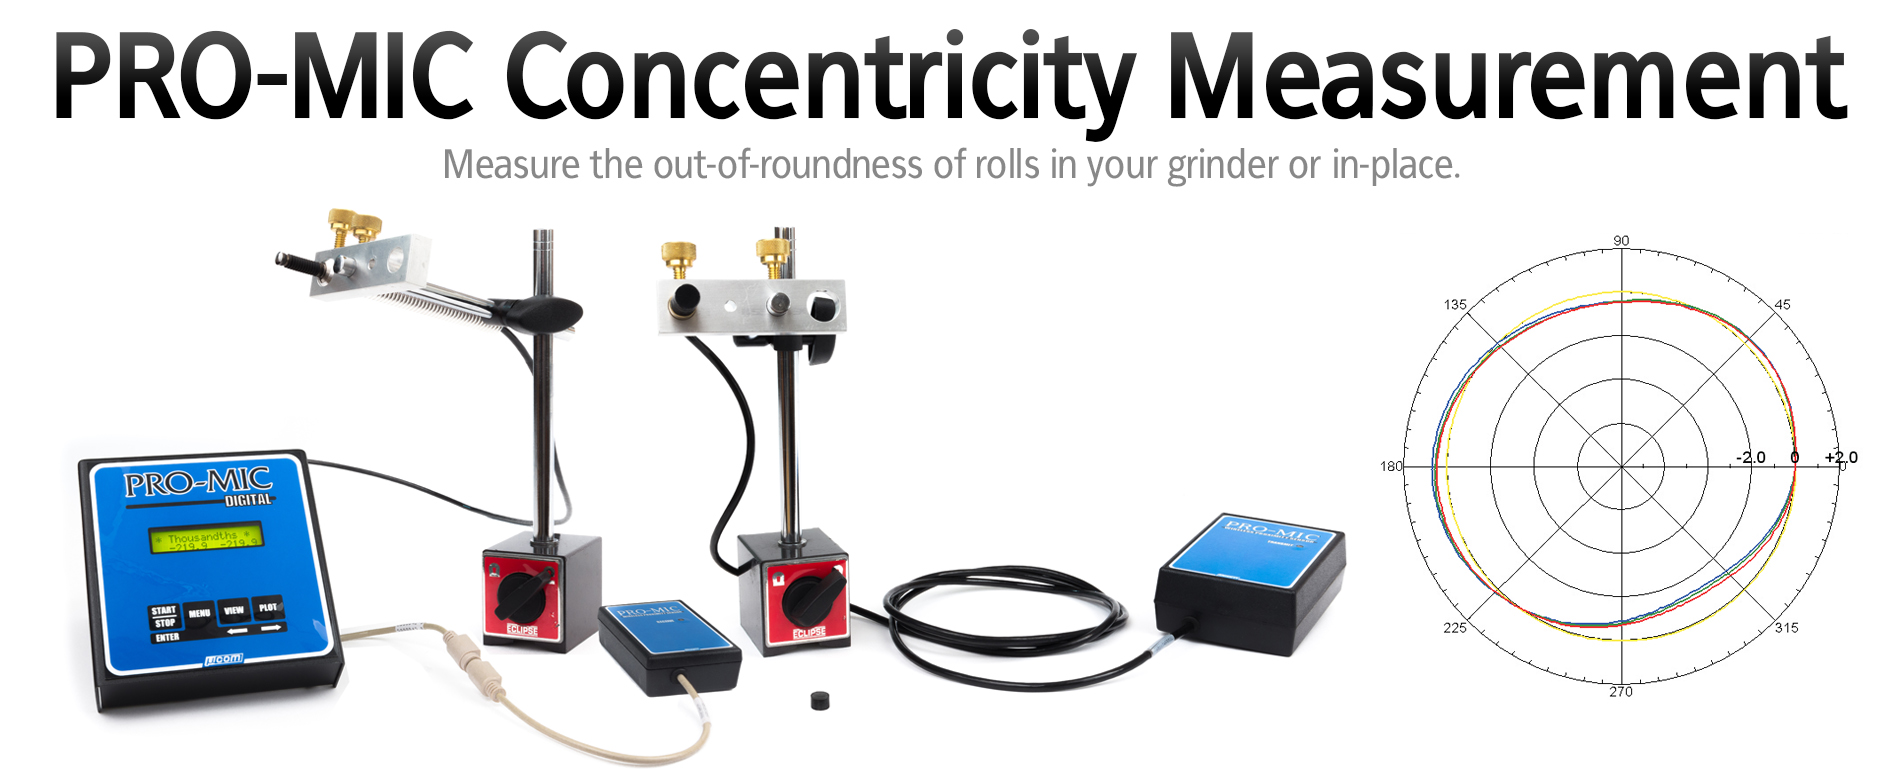 PRO-MIC Concentricity Measurement System